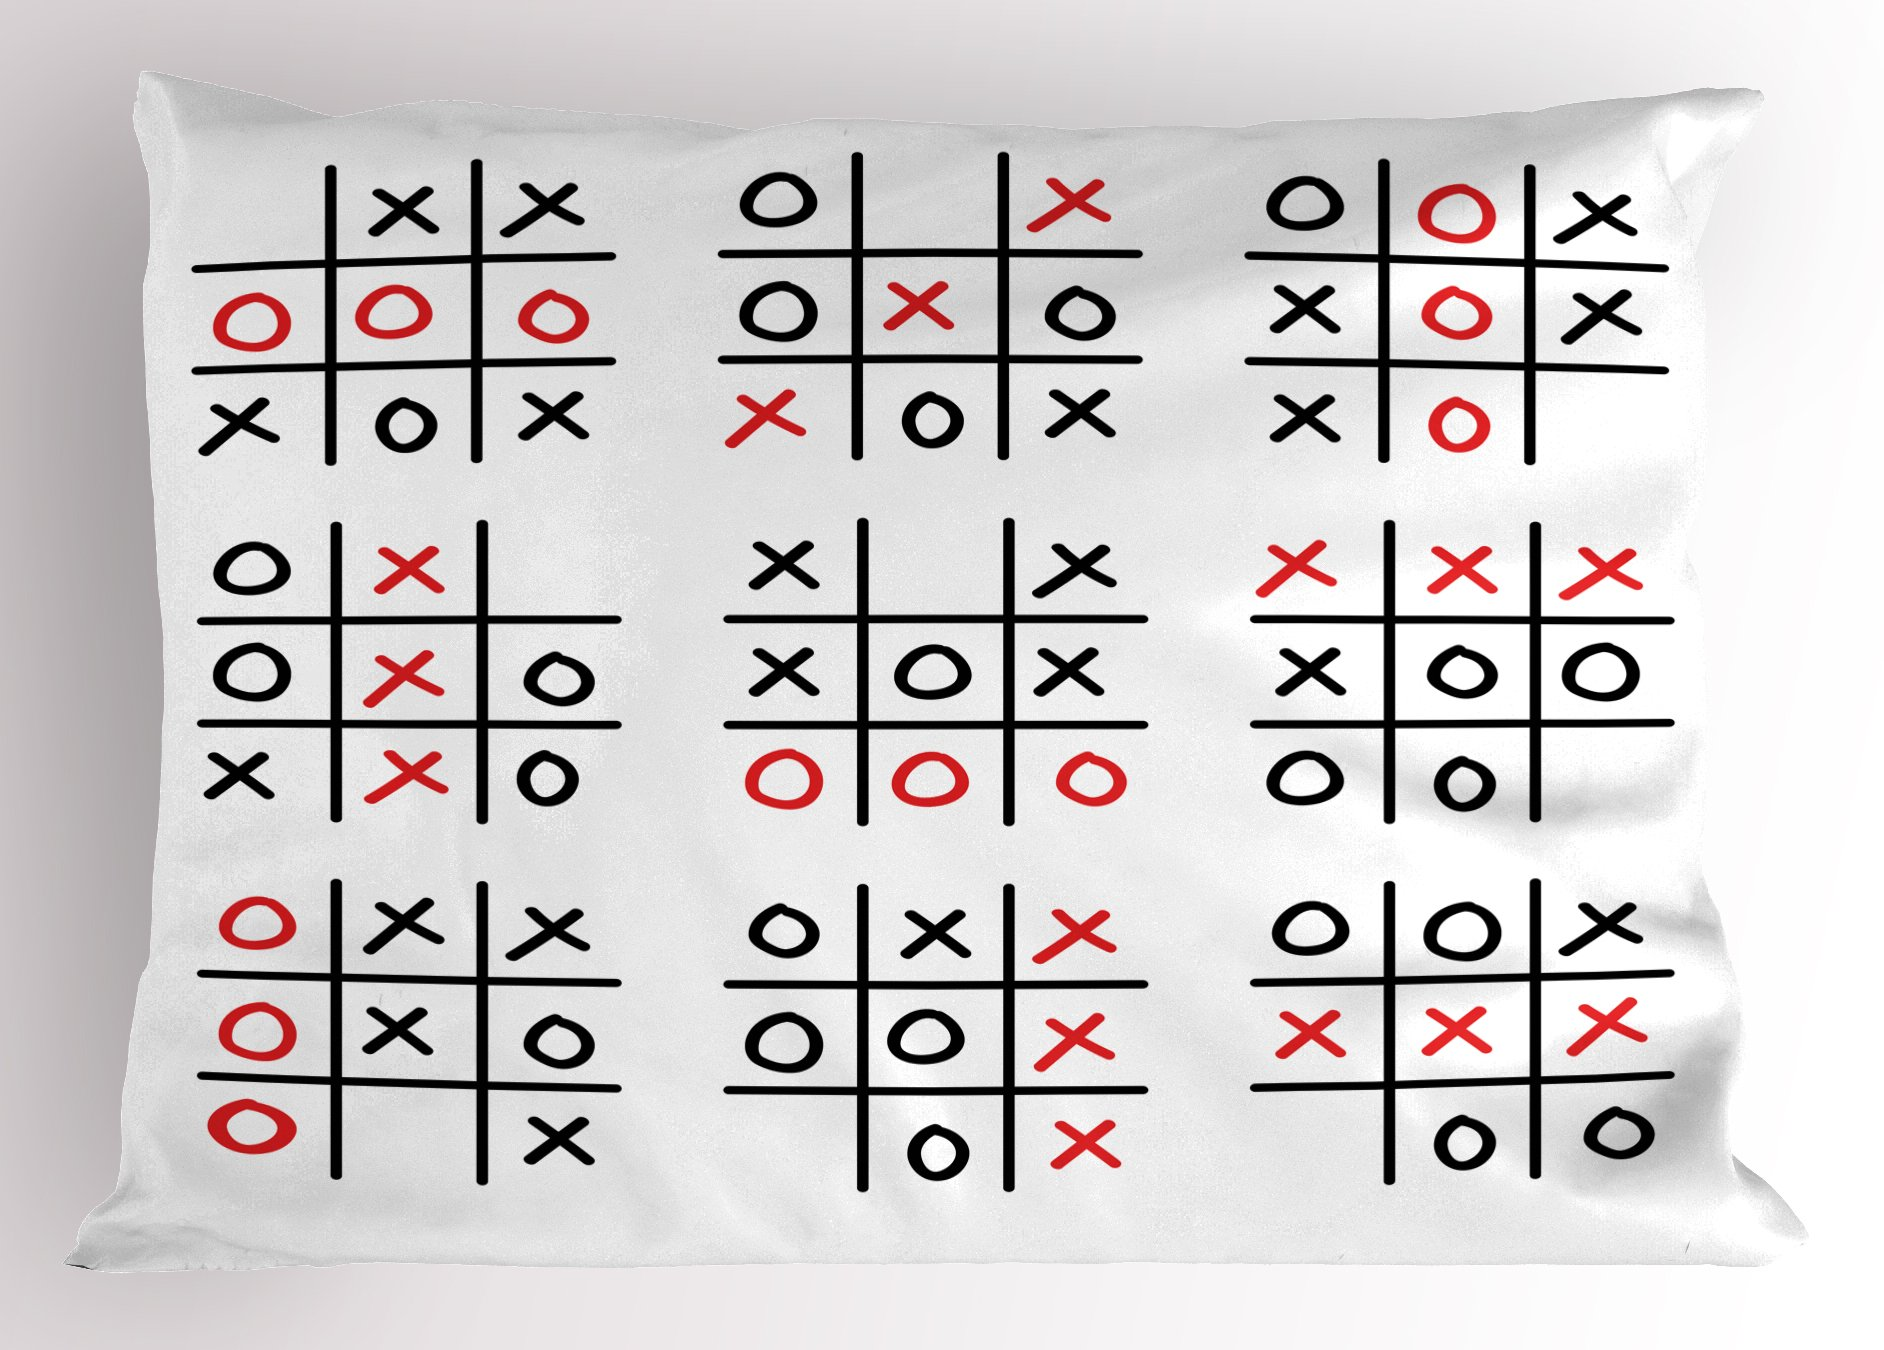 Ambesonne Xo Decor Pillow Sham, Doodle Style Tic Tac Toe Game Set Table with X and O Letters Artsy Design, Decorative Standard King Size Printed Pillowcase, 36 X 20 inches, Black White Red